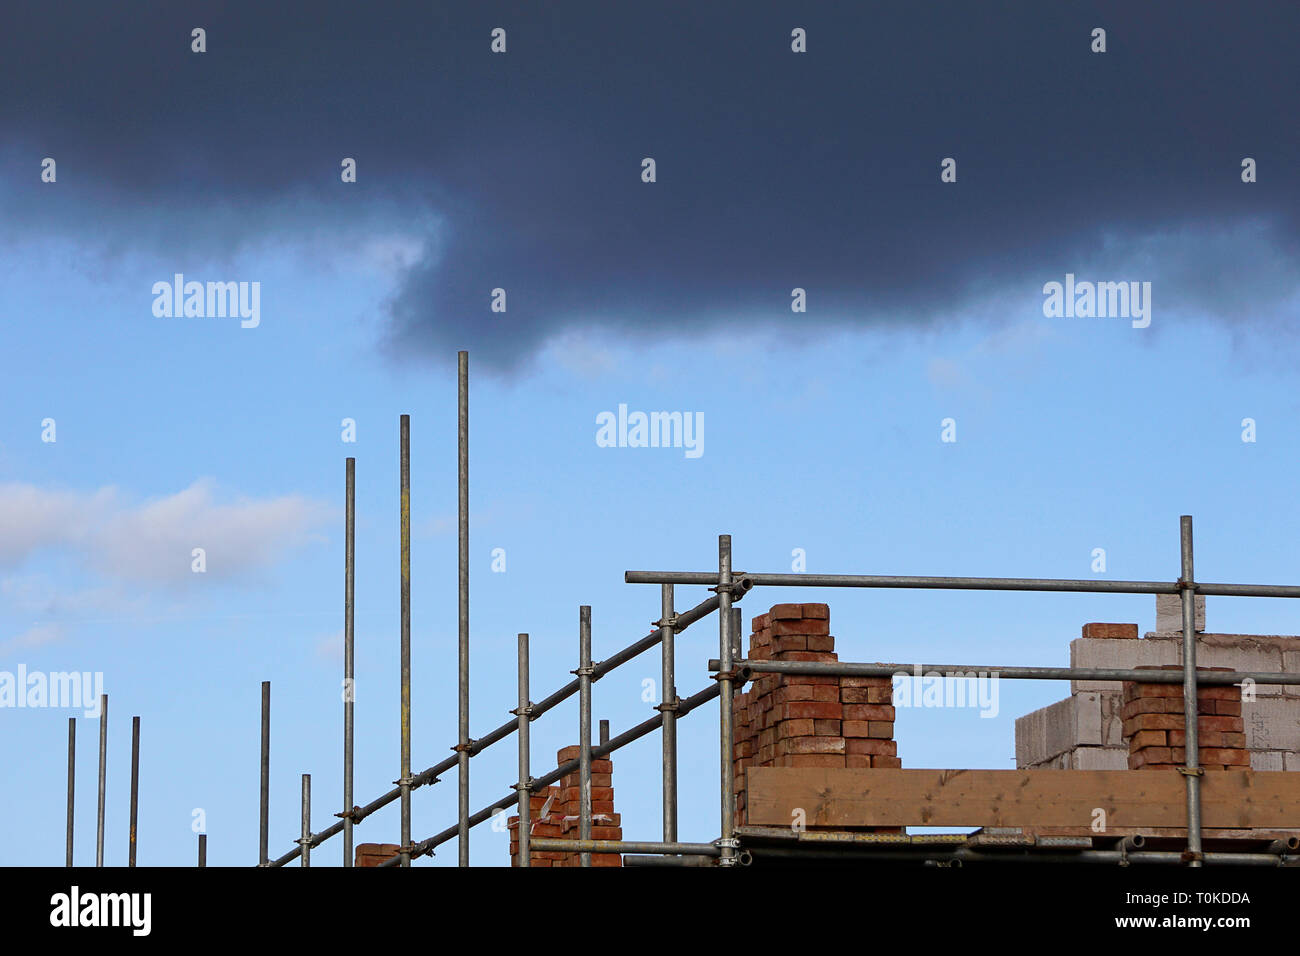 Storm clouds gathering over a building site with scaffolding and bricks piled up - Stock Image